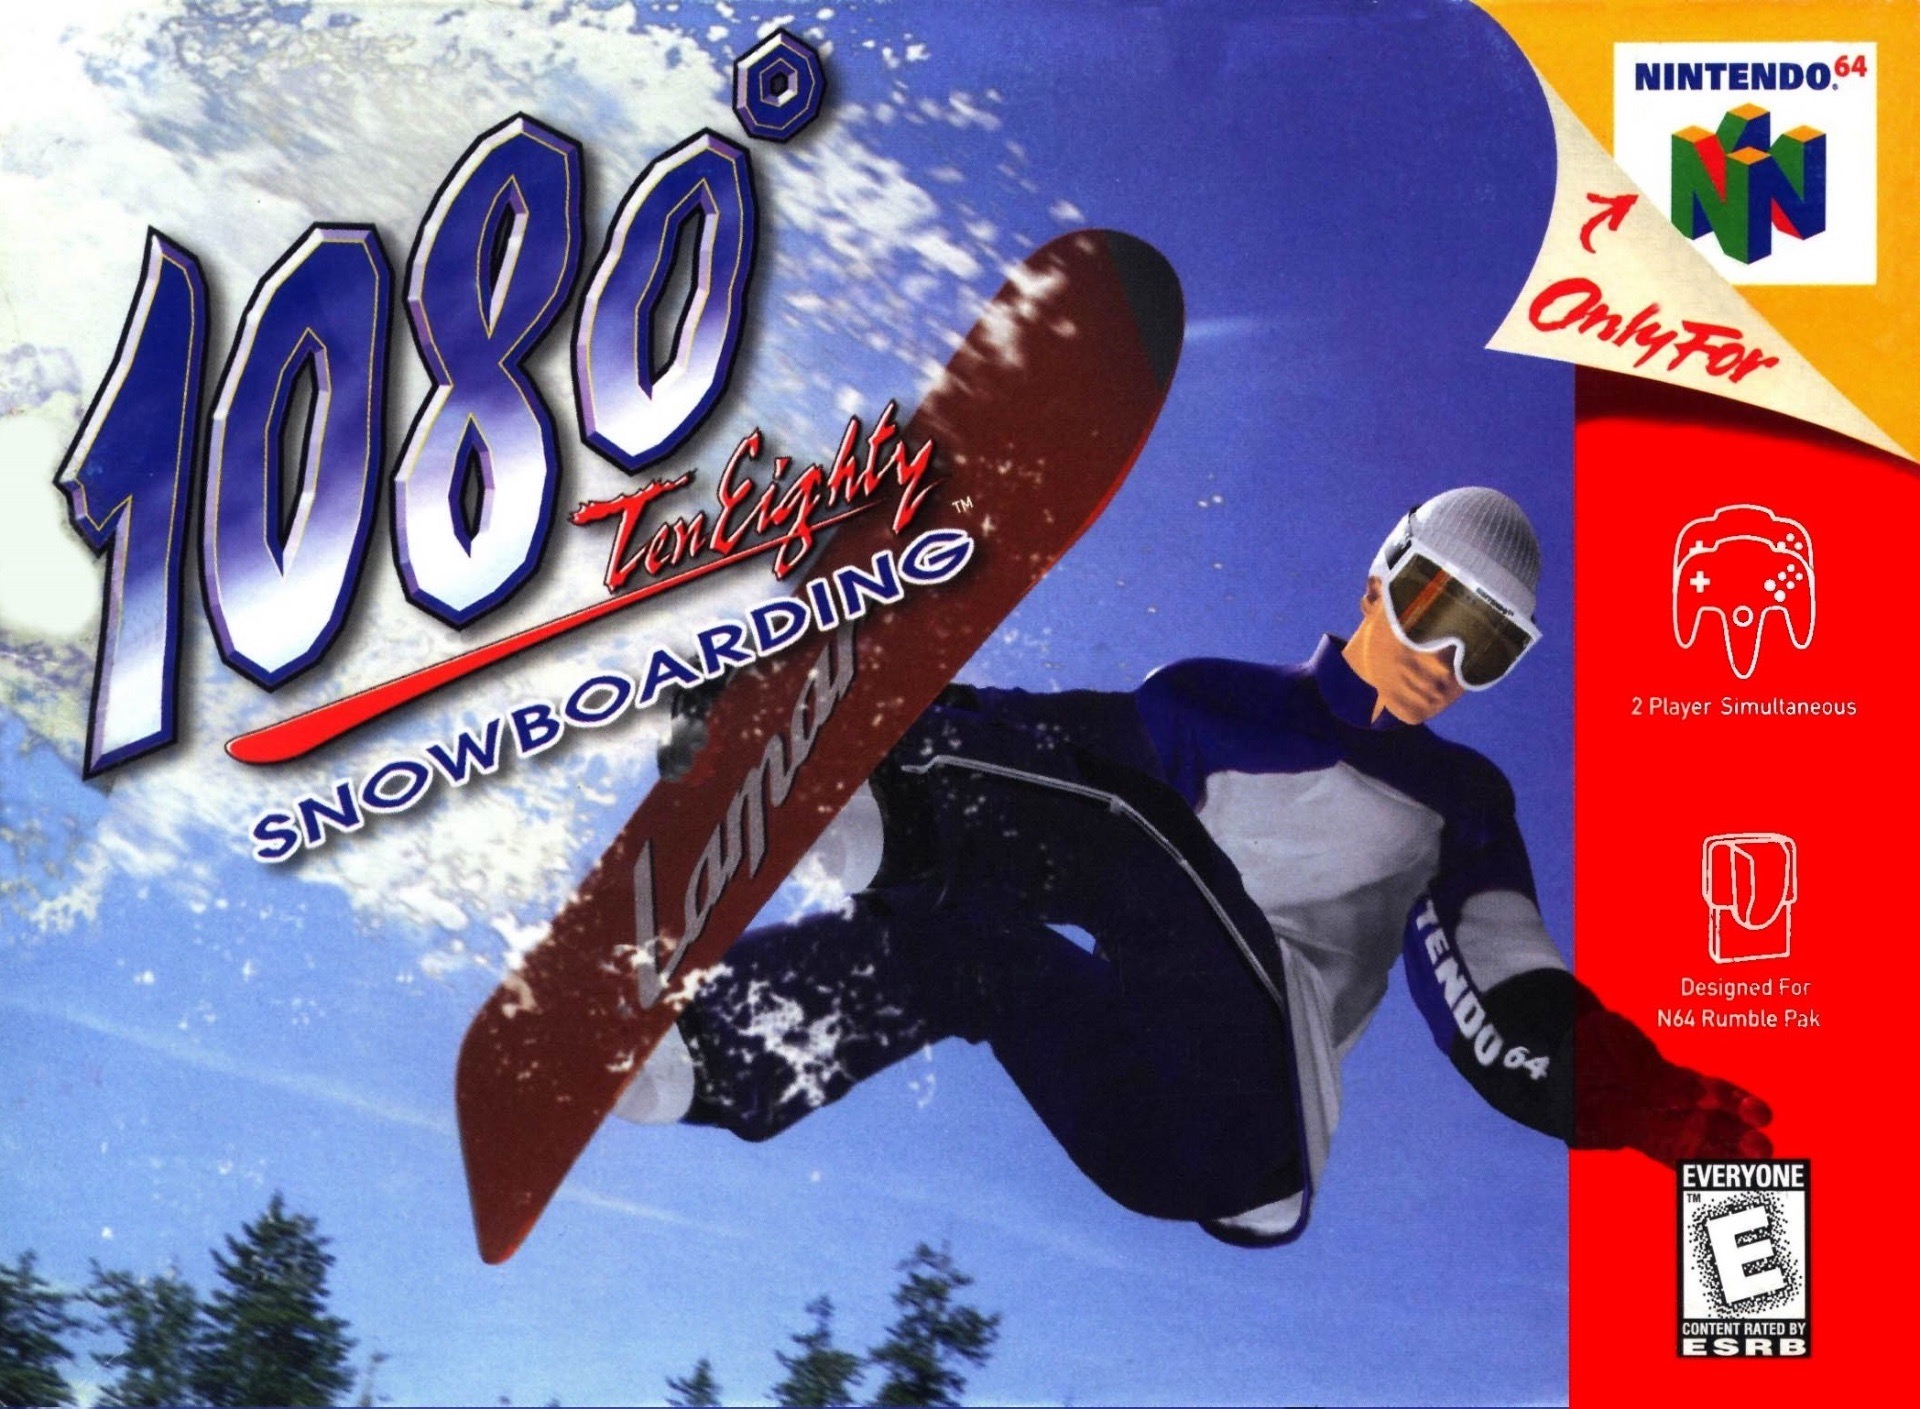 1080 Snowboarding on N64.